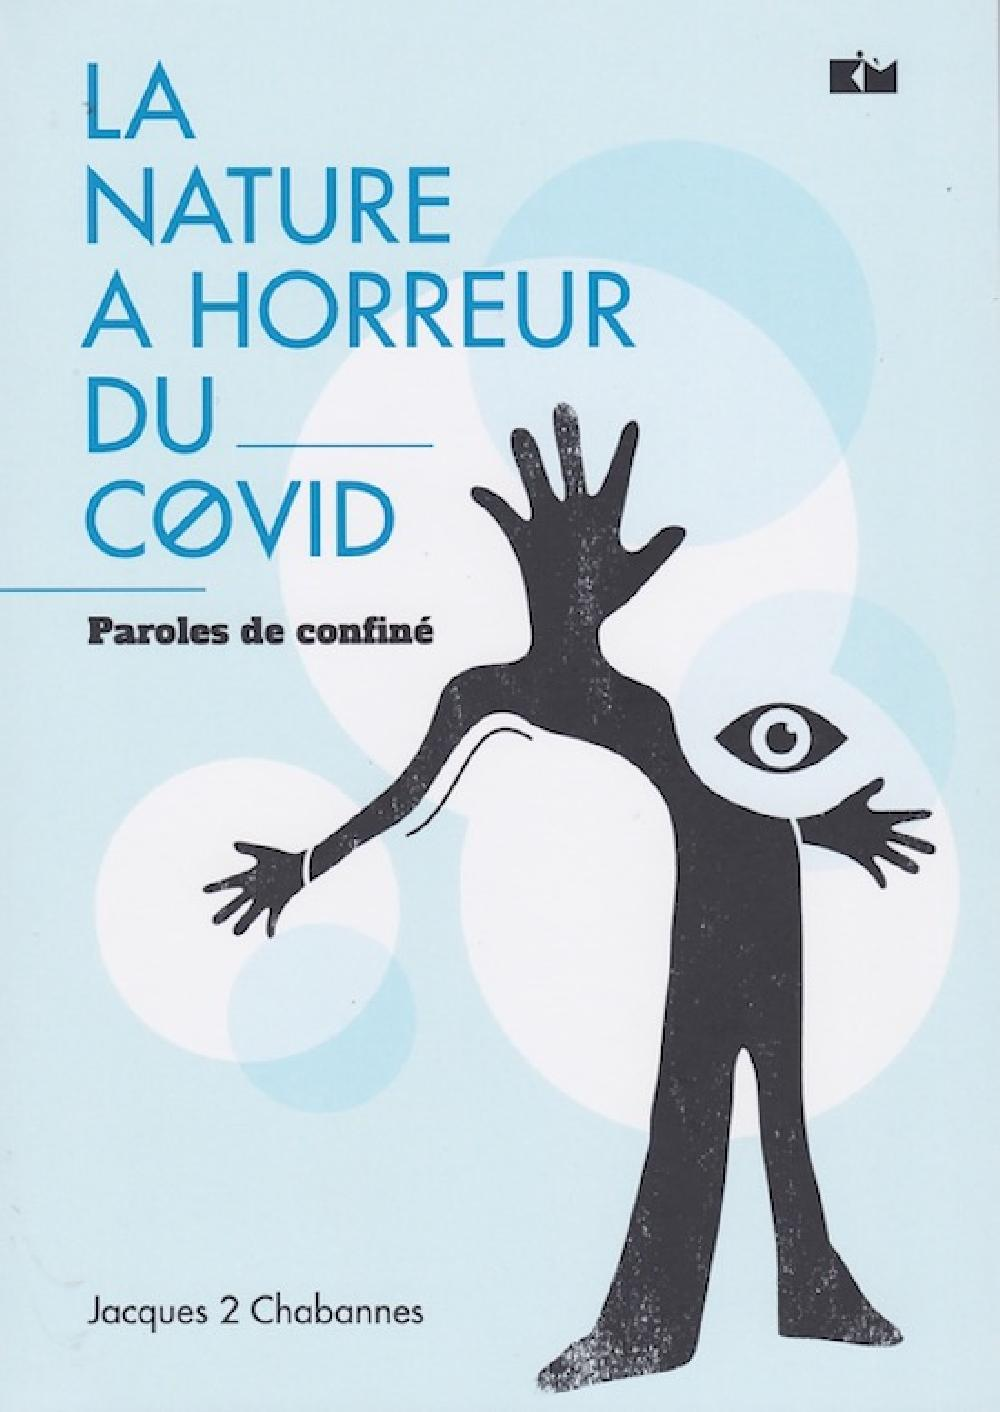 La nature a horreur du Covid   Paroles de confiné